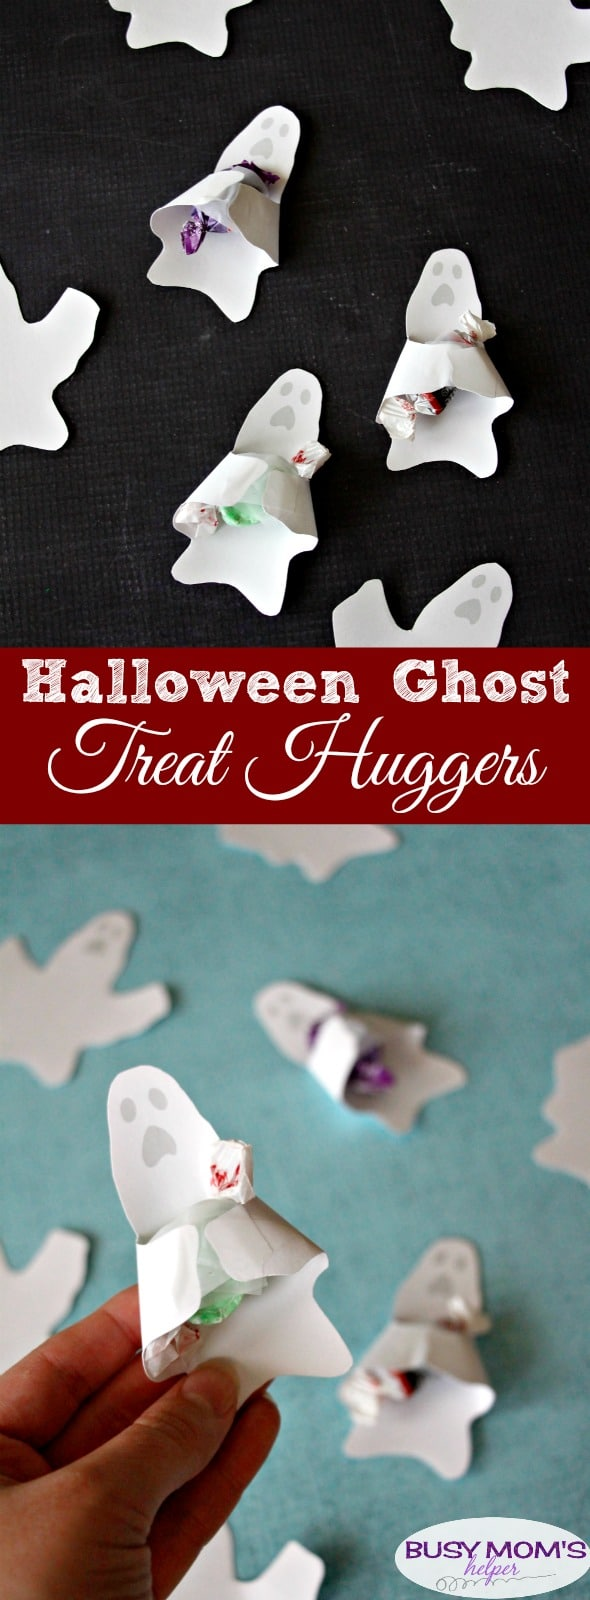 Halloween Ghost Treat Huggers free printable